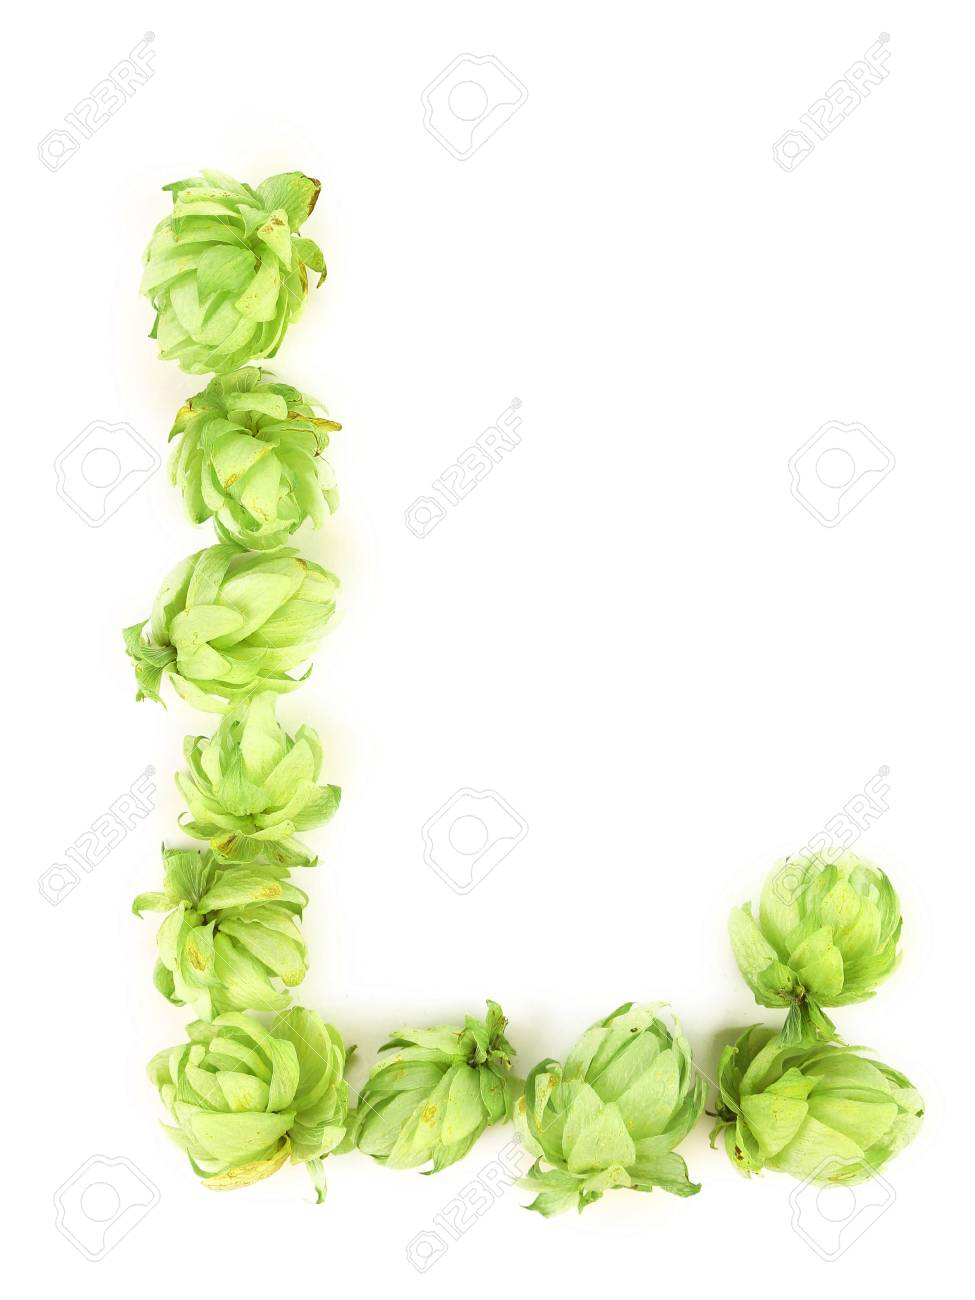 Hop flowers laid in form of letter L. Isolated on a white background. Stock Photo - 23533350